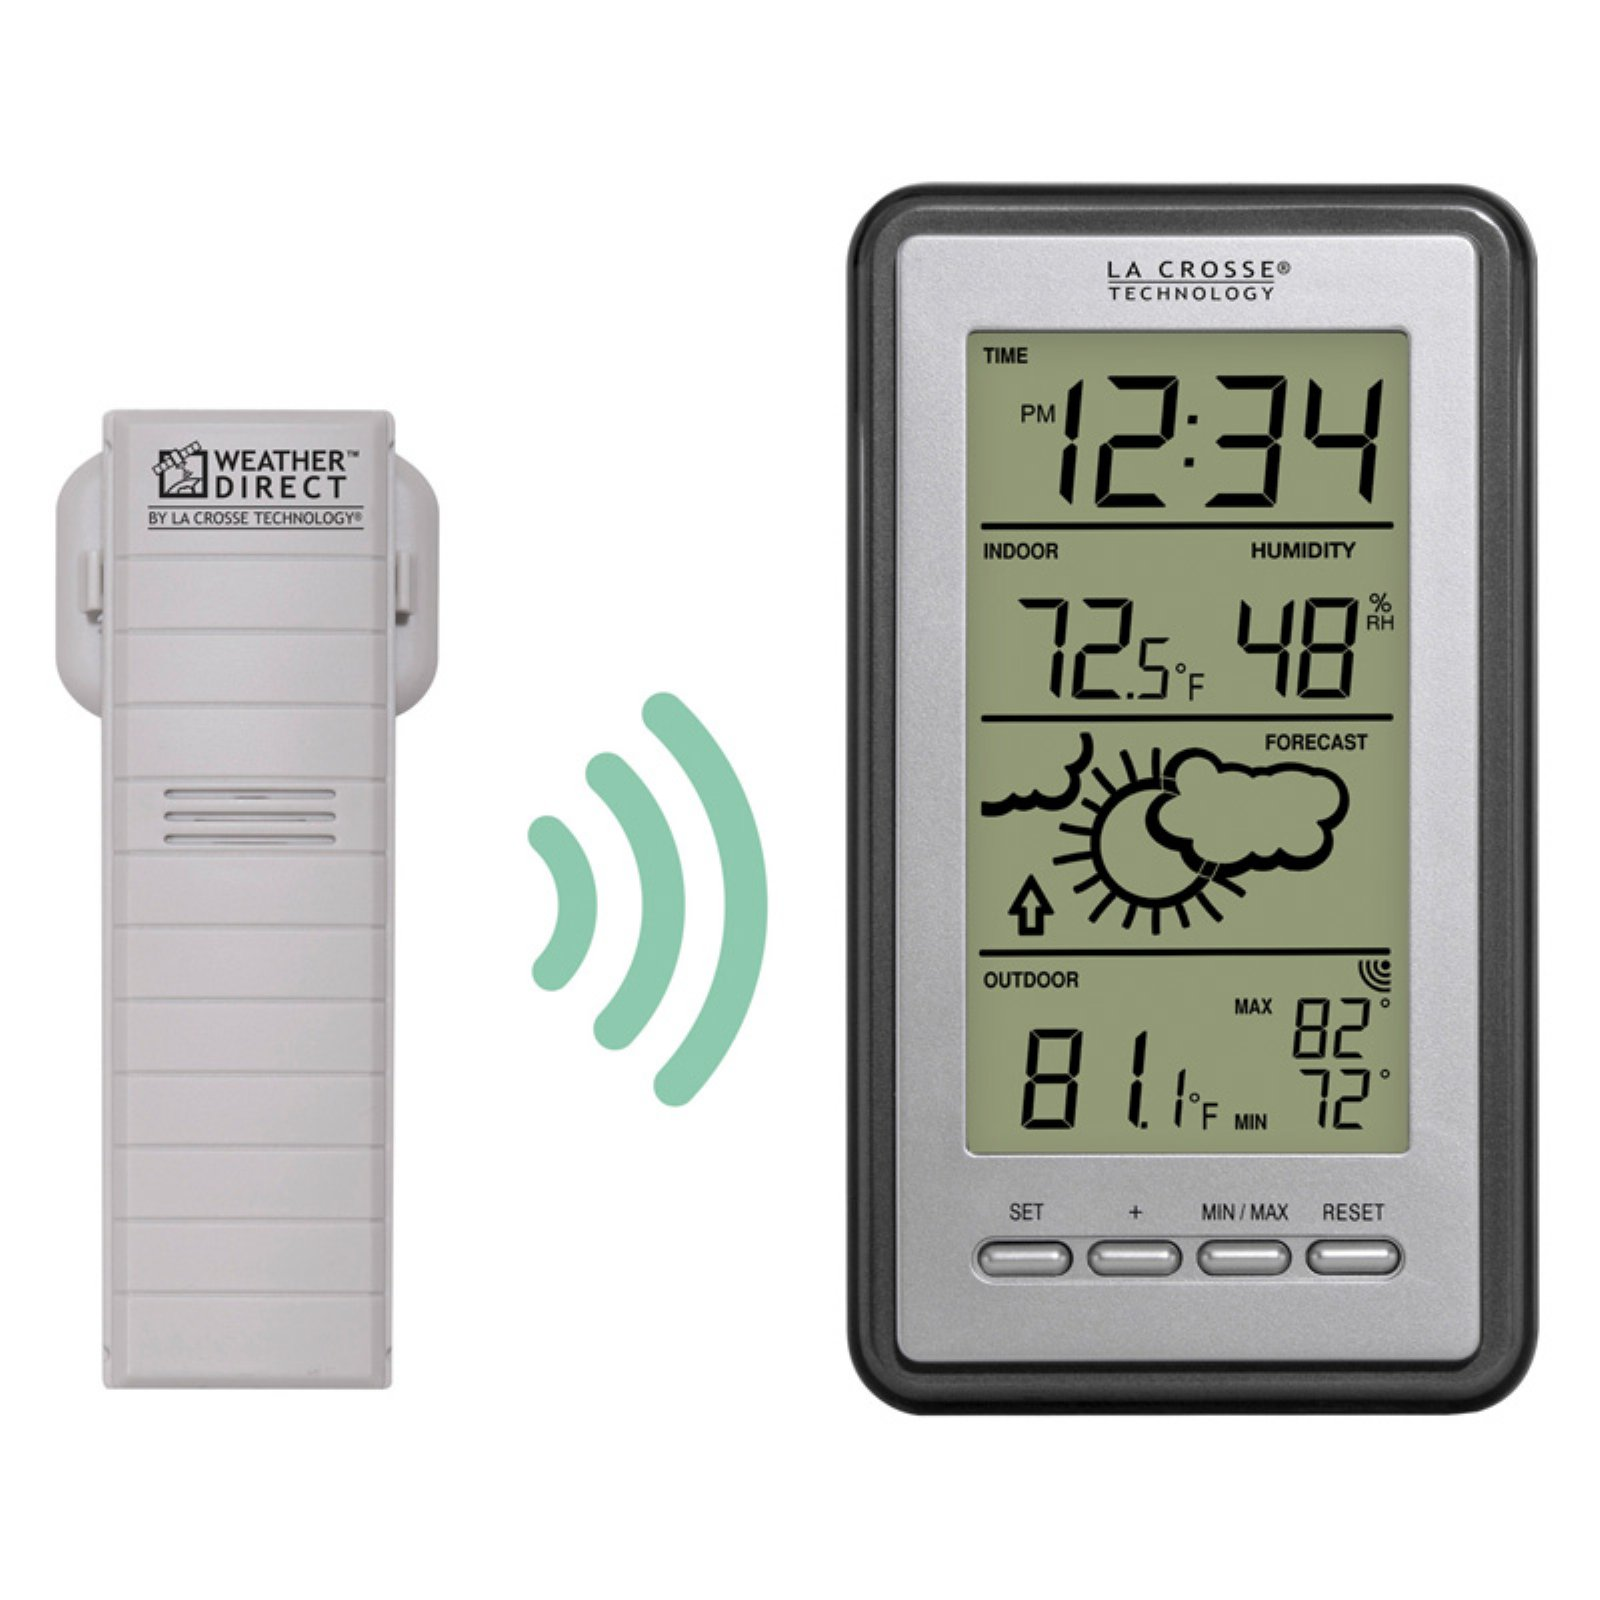 La Crosse Technology Digital Forecast Station with Temperature and Humidity